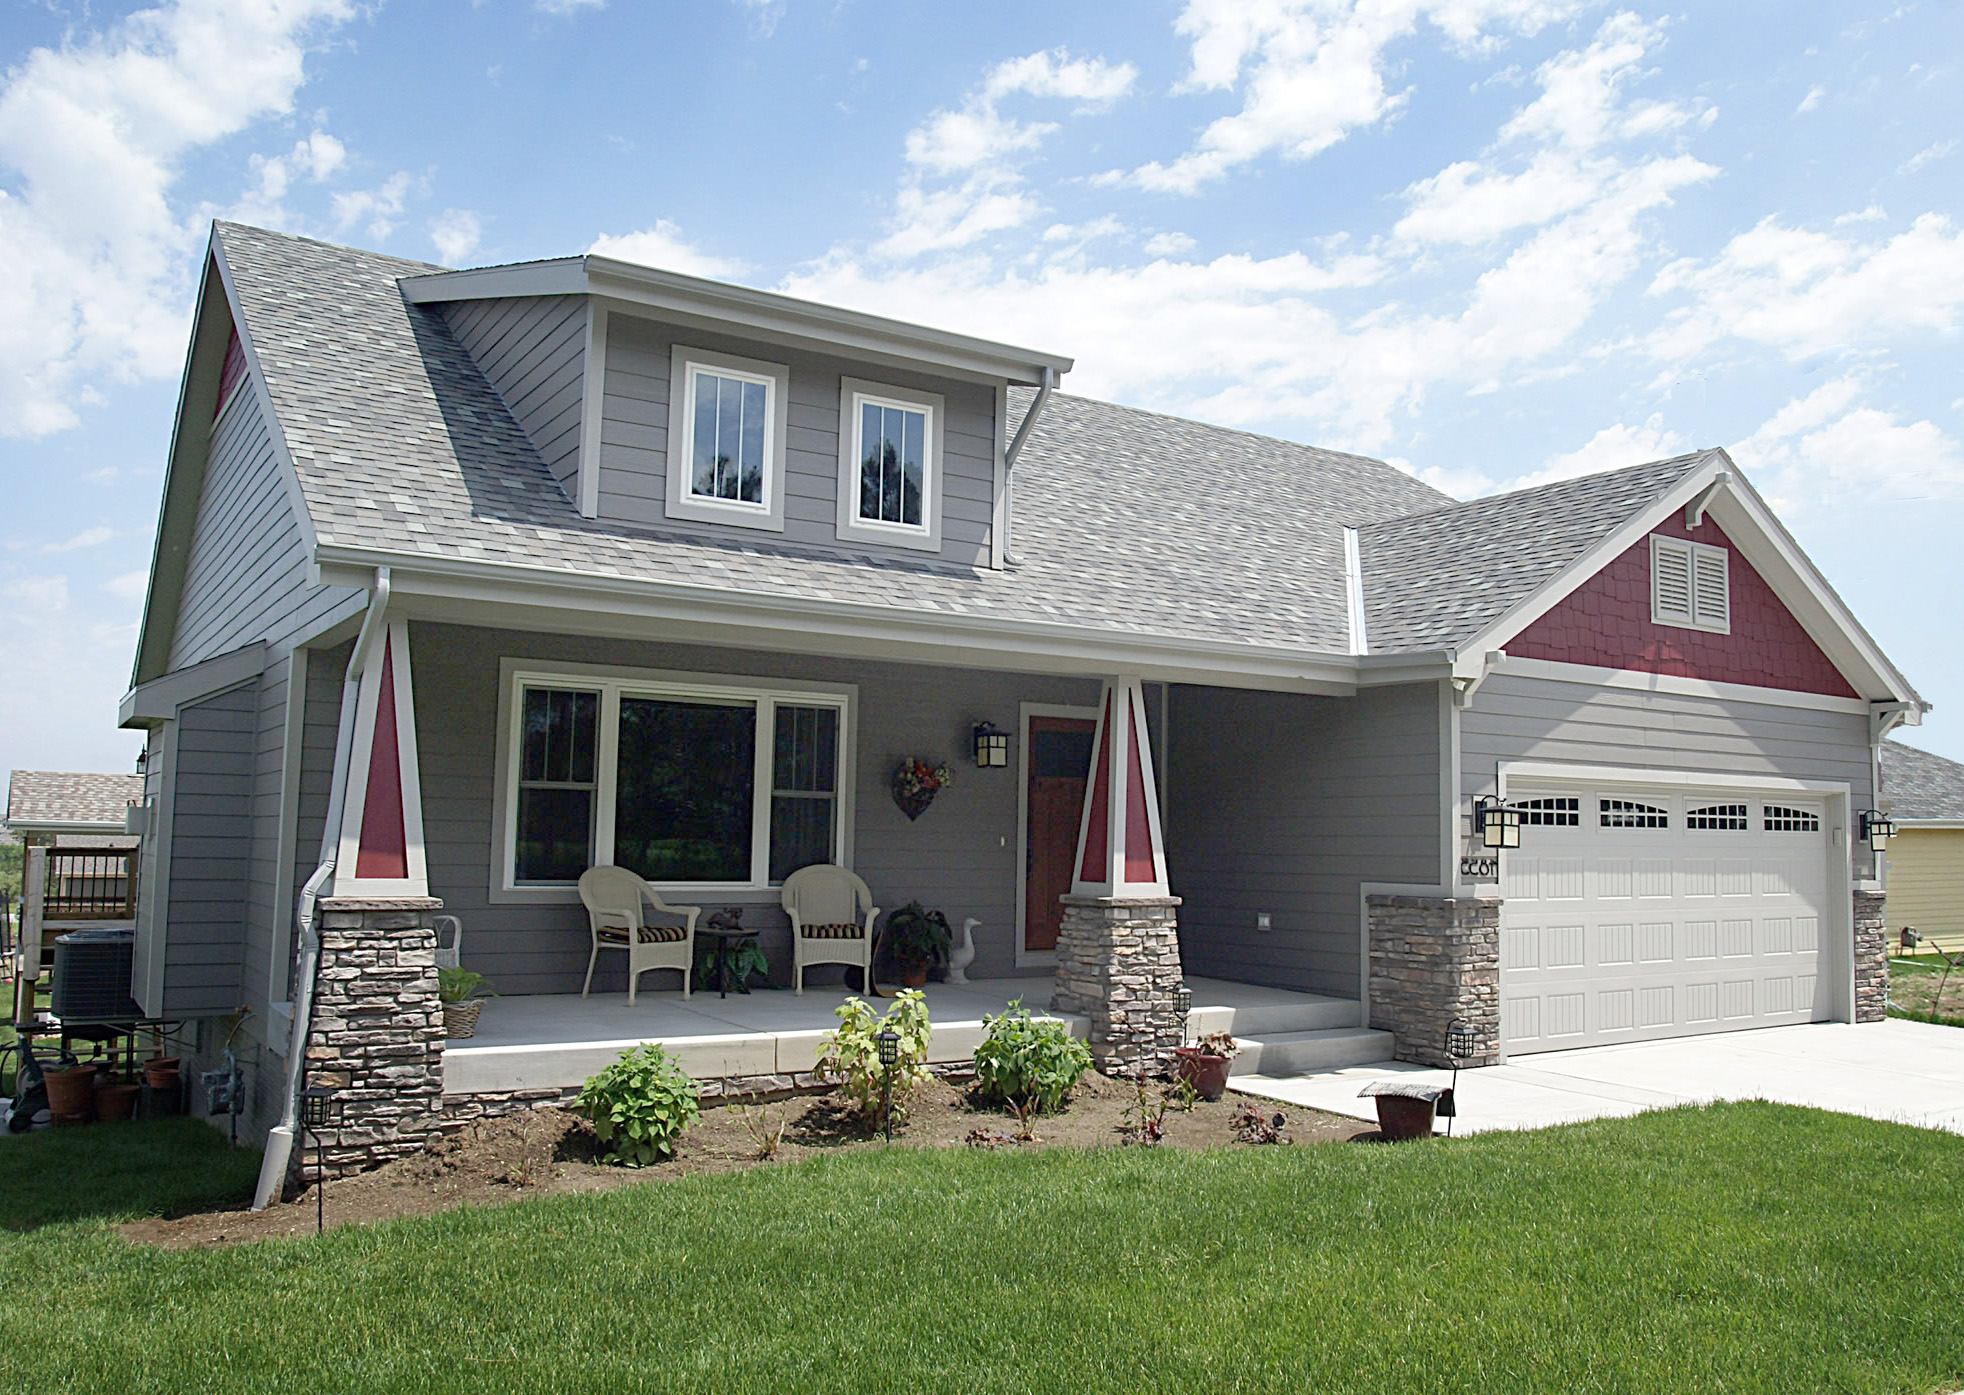 Top 10 roof dormer types plus costs and pros cons for How big is a square of siding